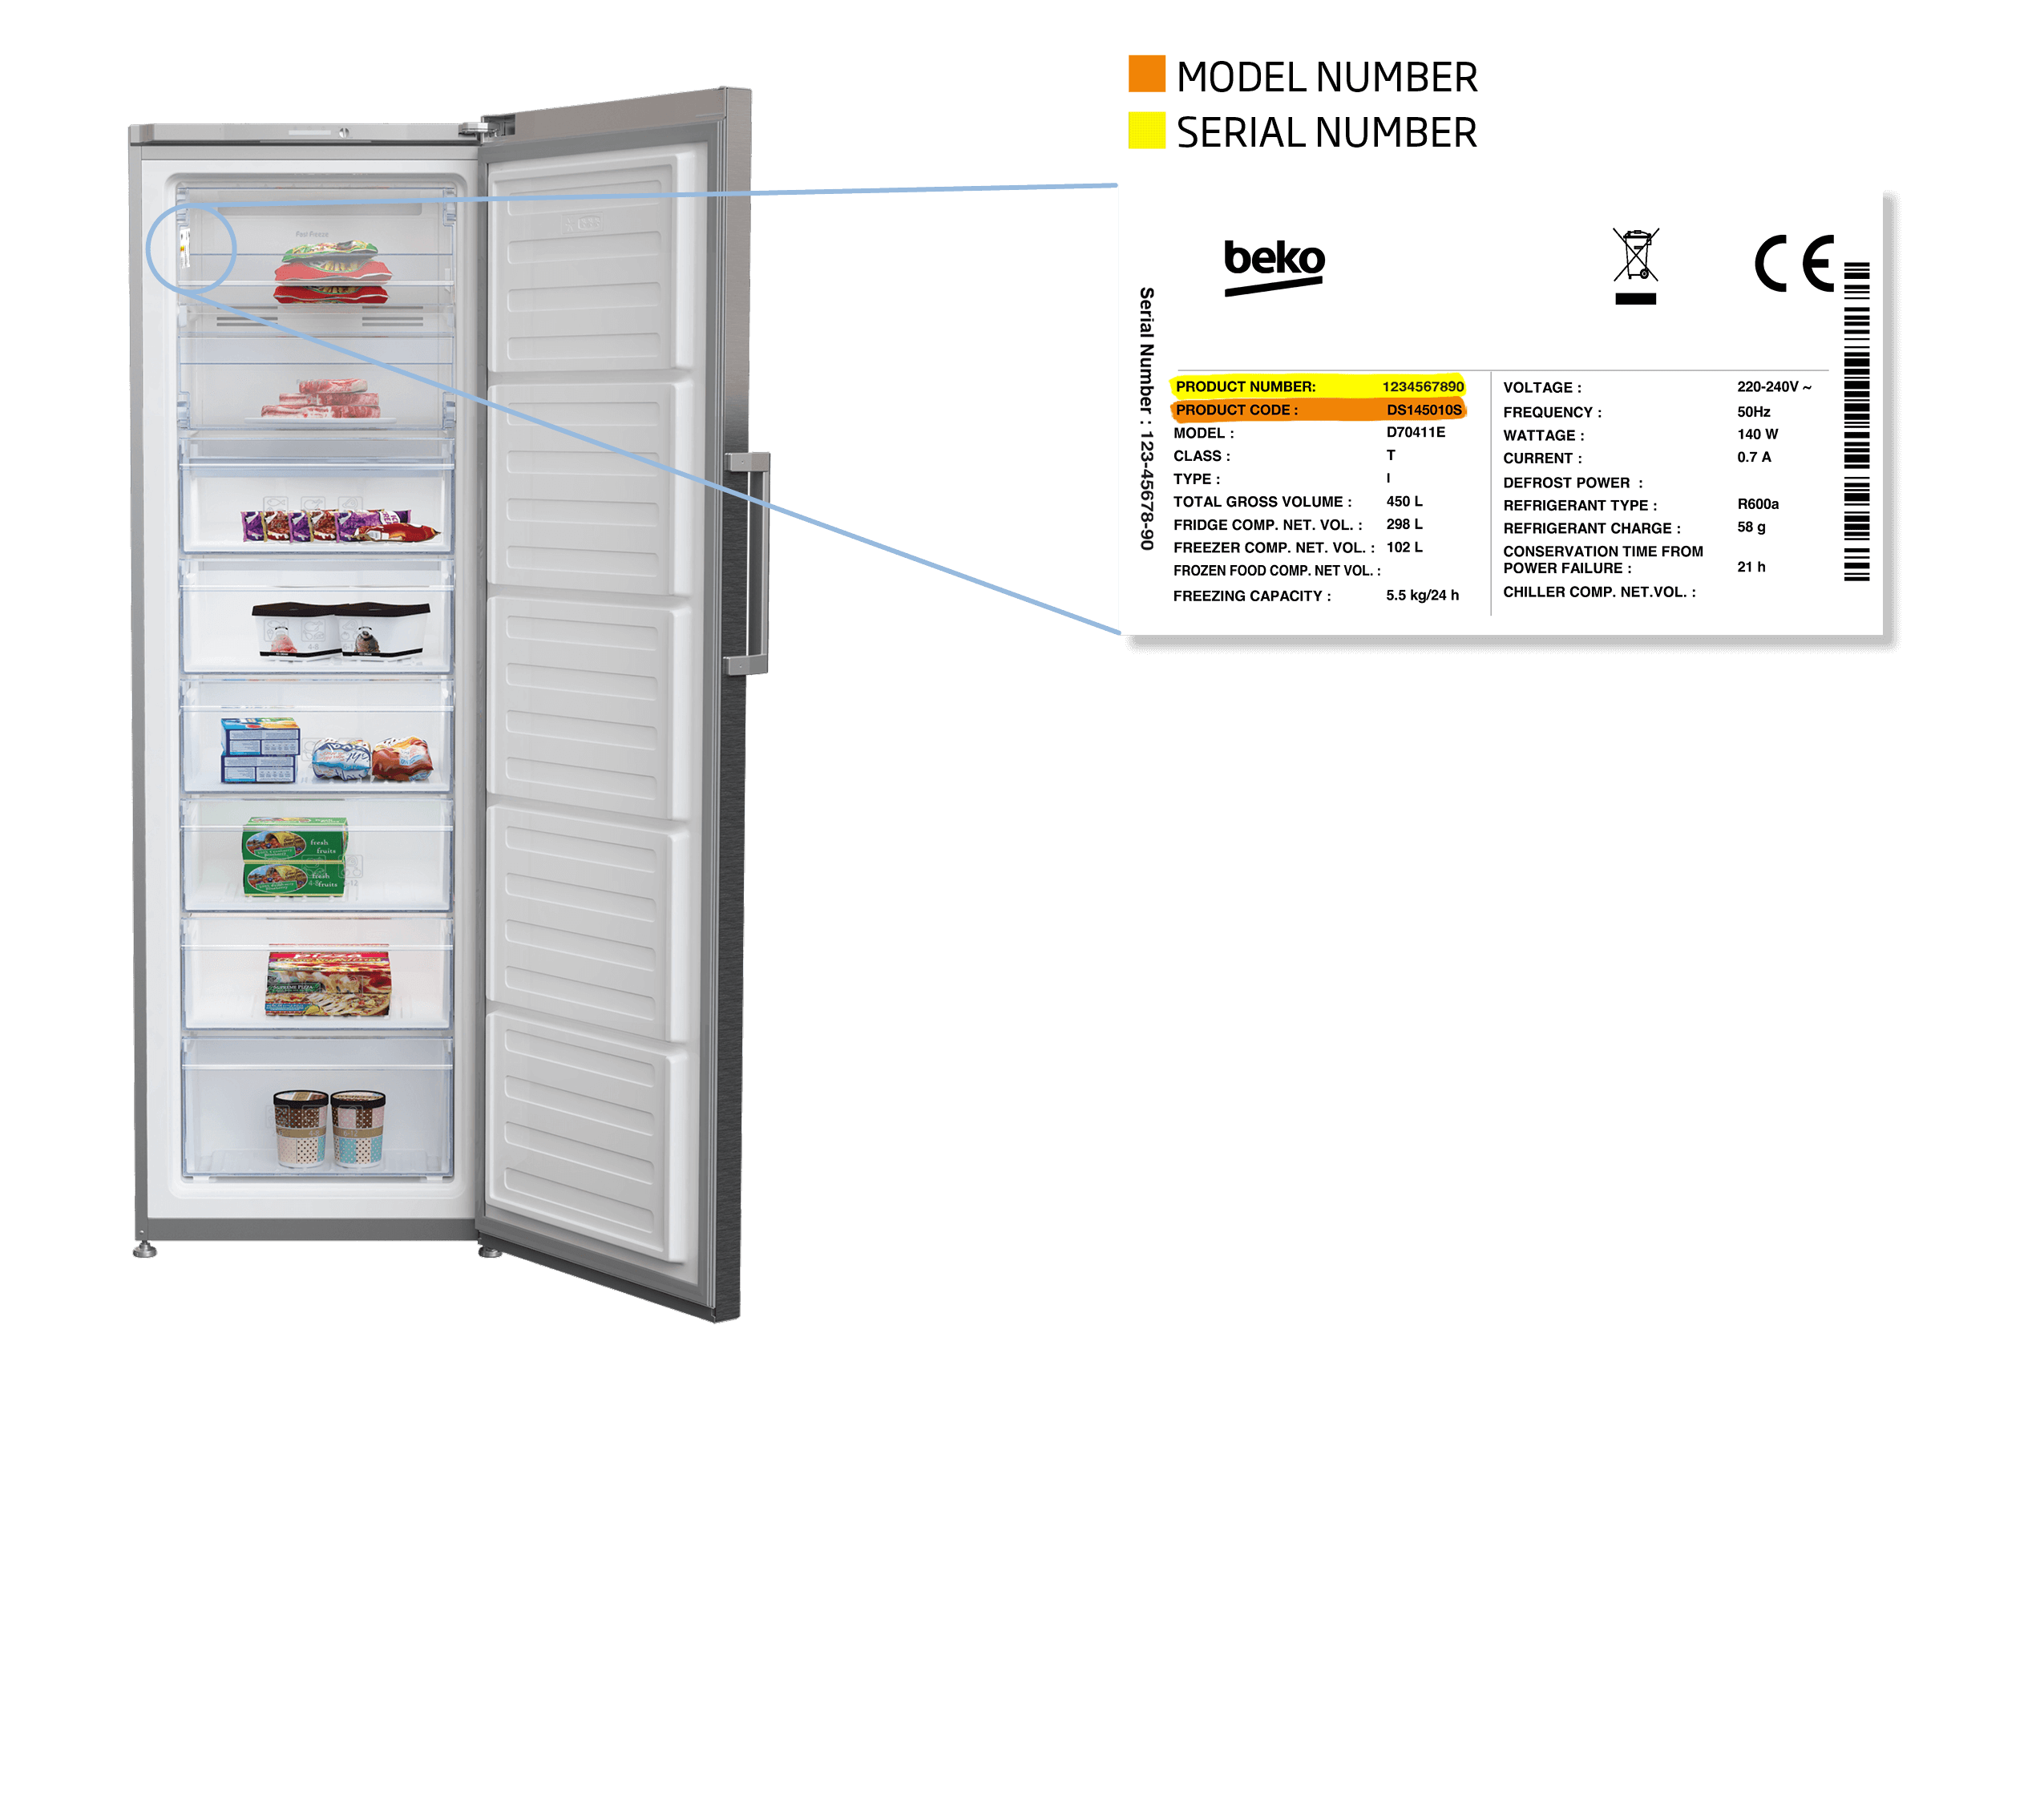 upright freezer model number